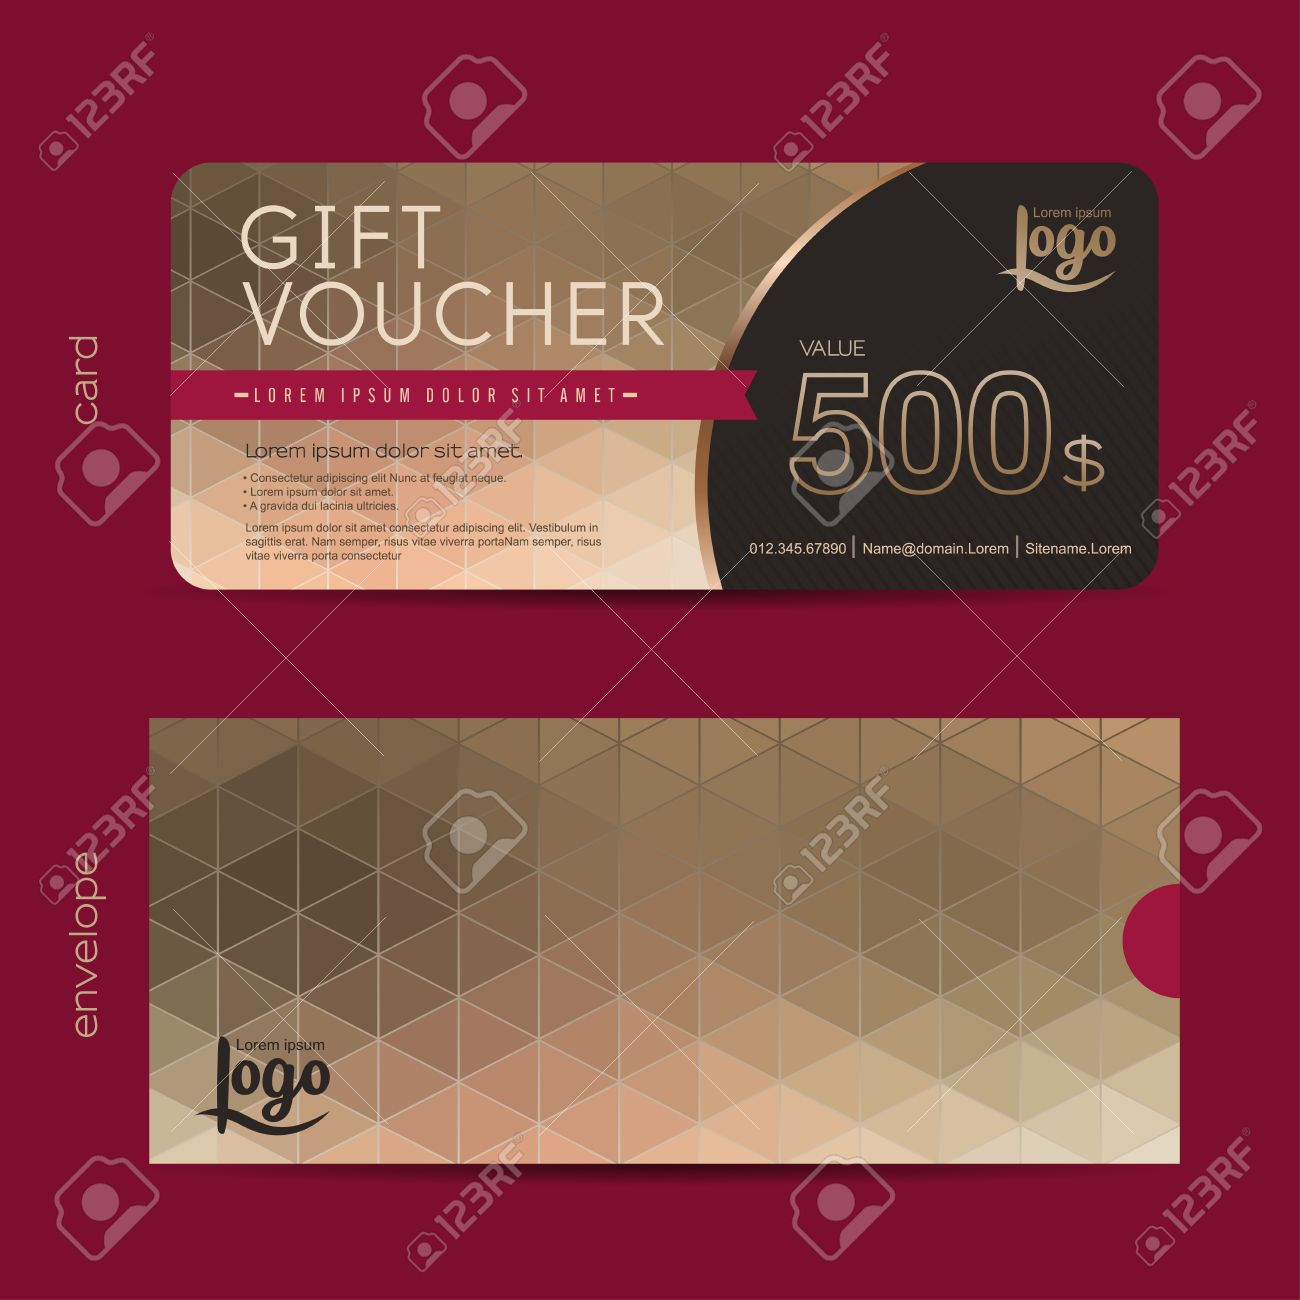 gift voucher template premium pattern and envelope design gift voucher template premium pattern and envelope design cute gift voucher certificate coupon design